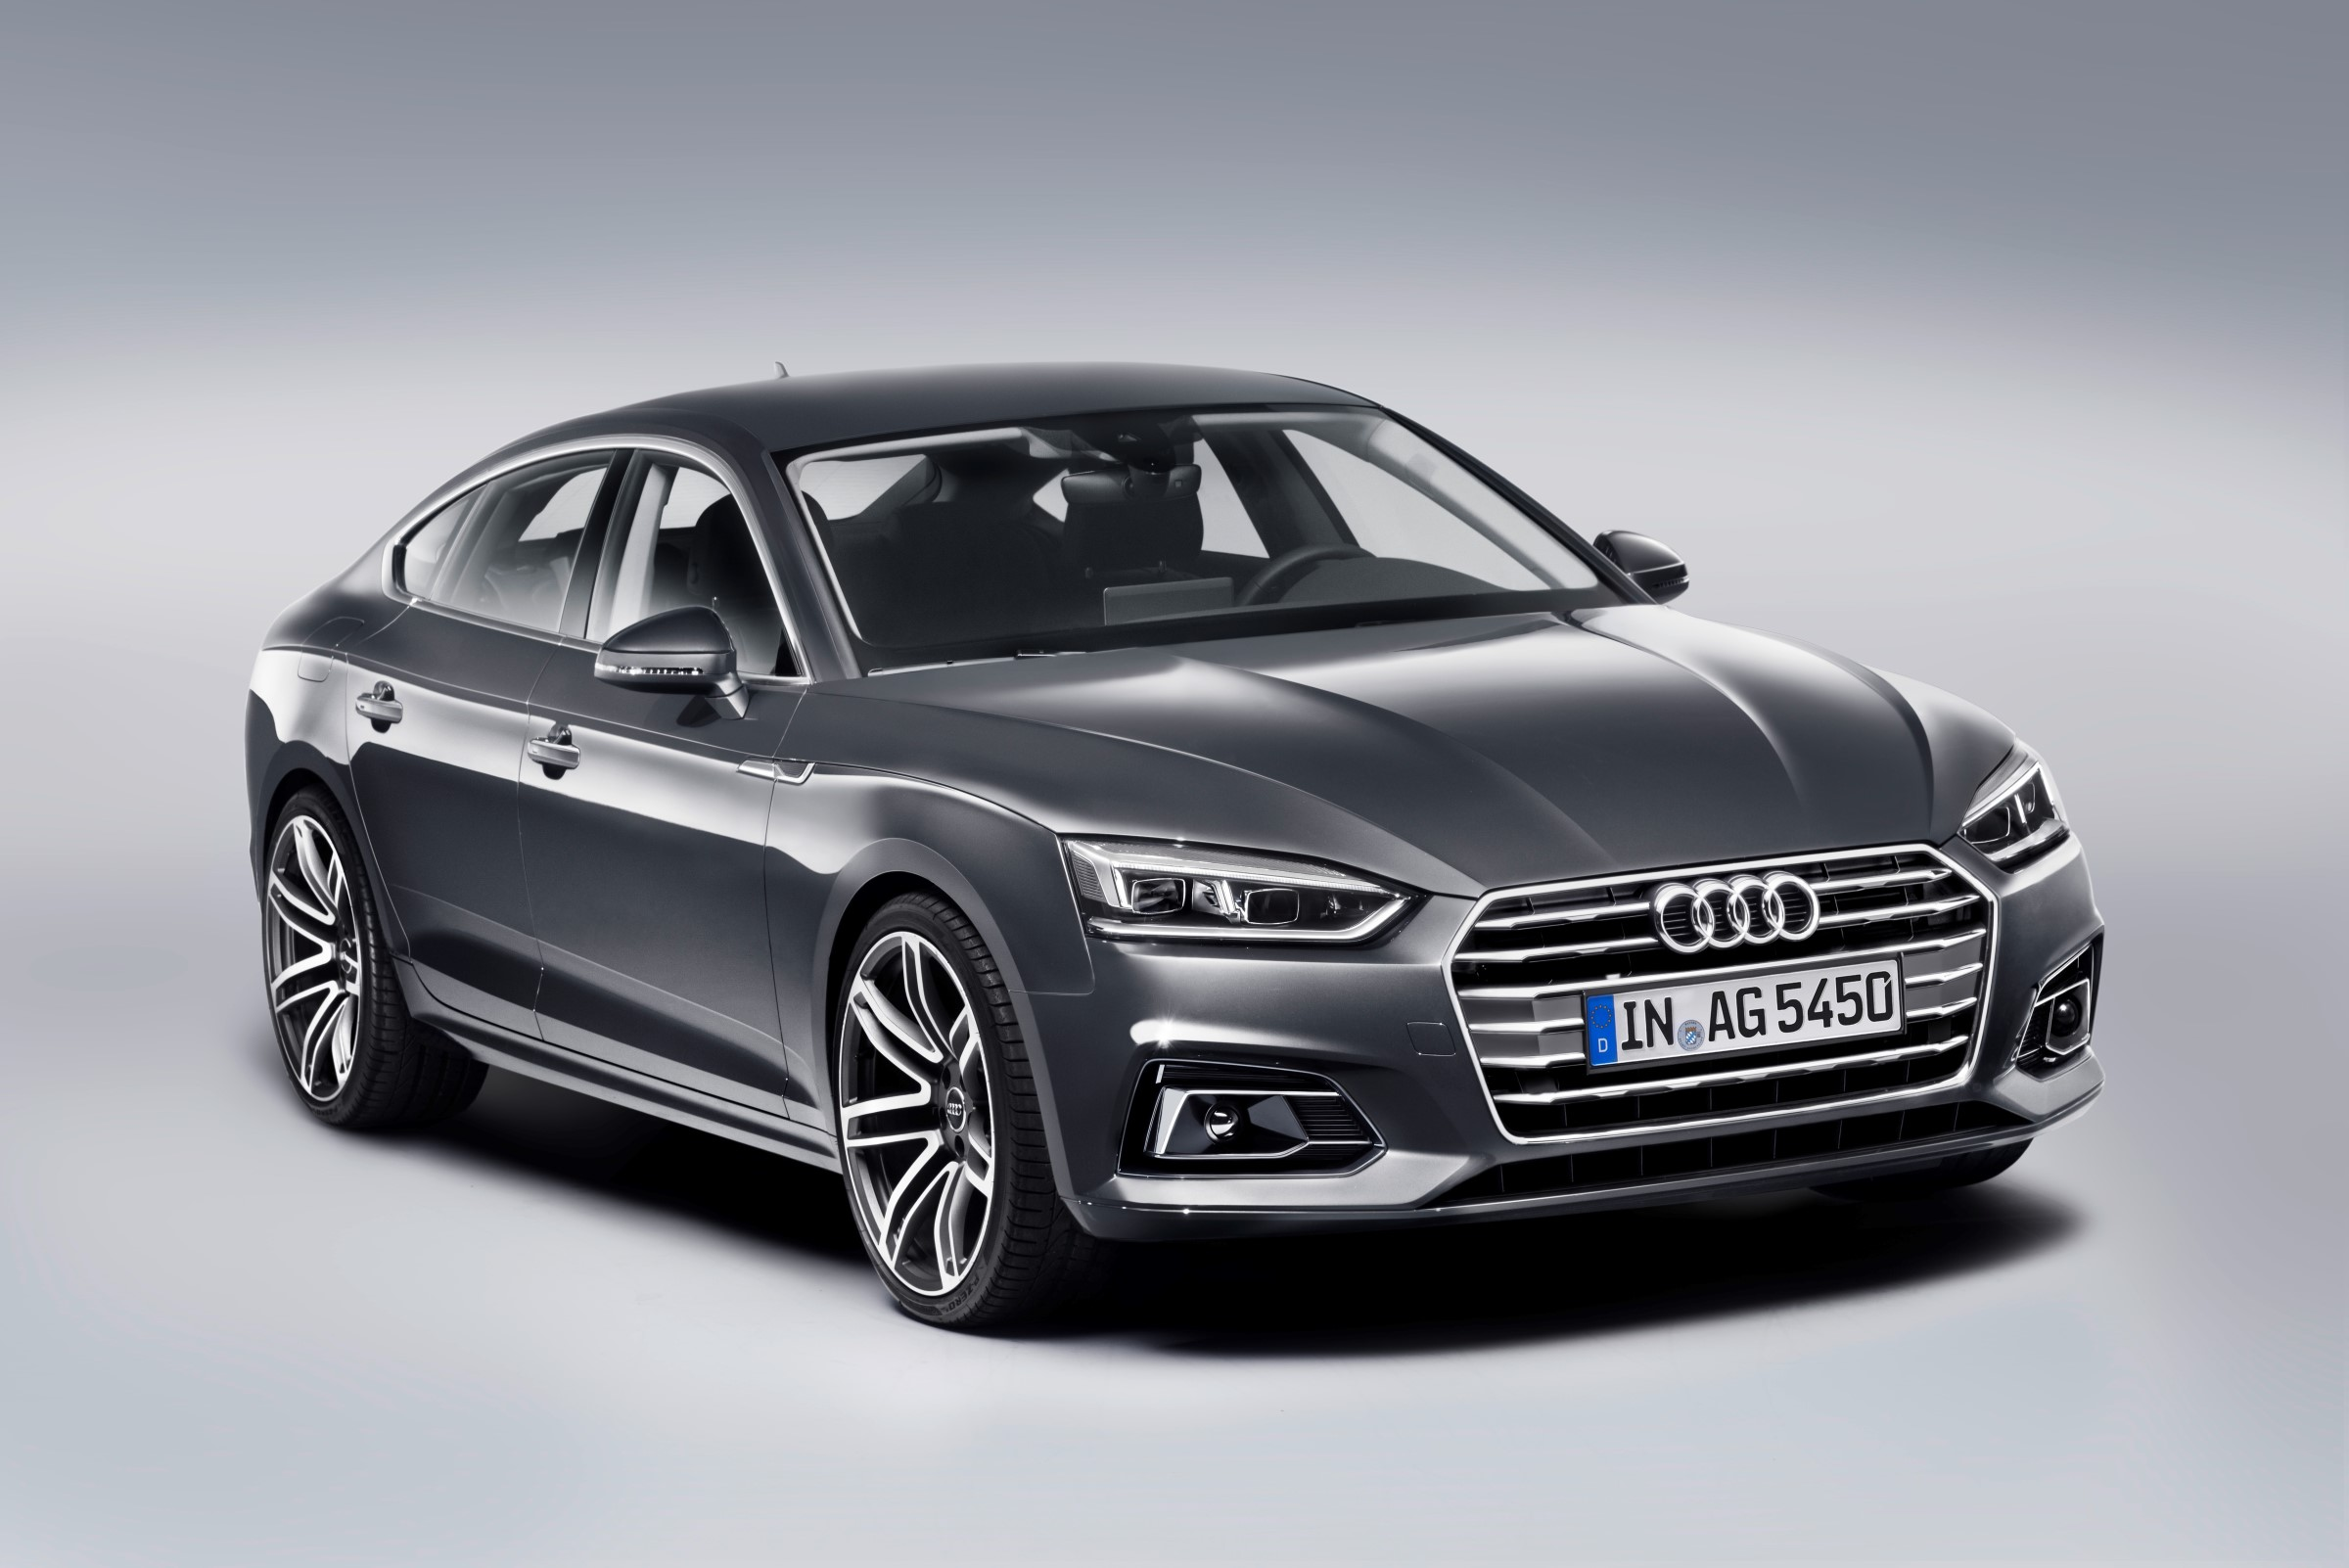 3 New Audi E Tron Electric Cars By 2020 But Combustion Engines